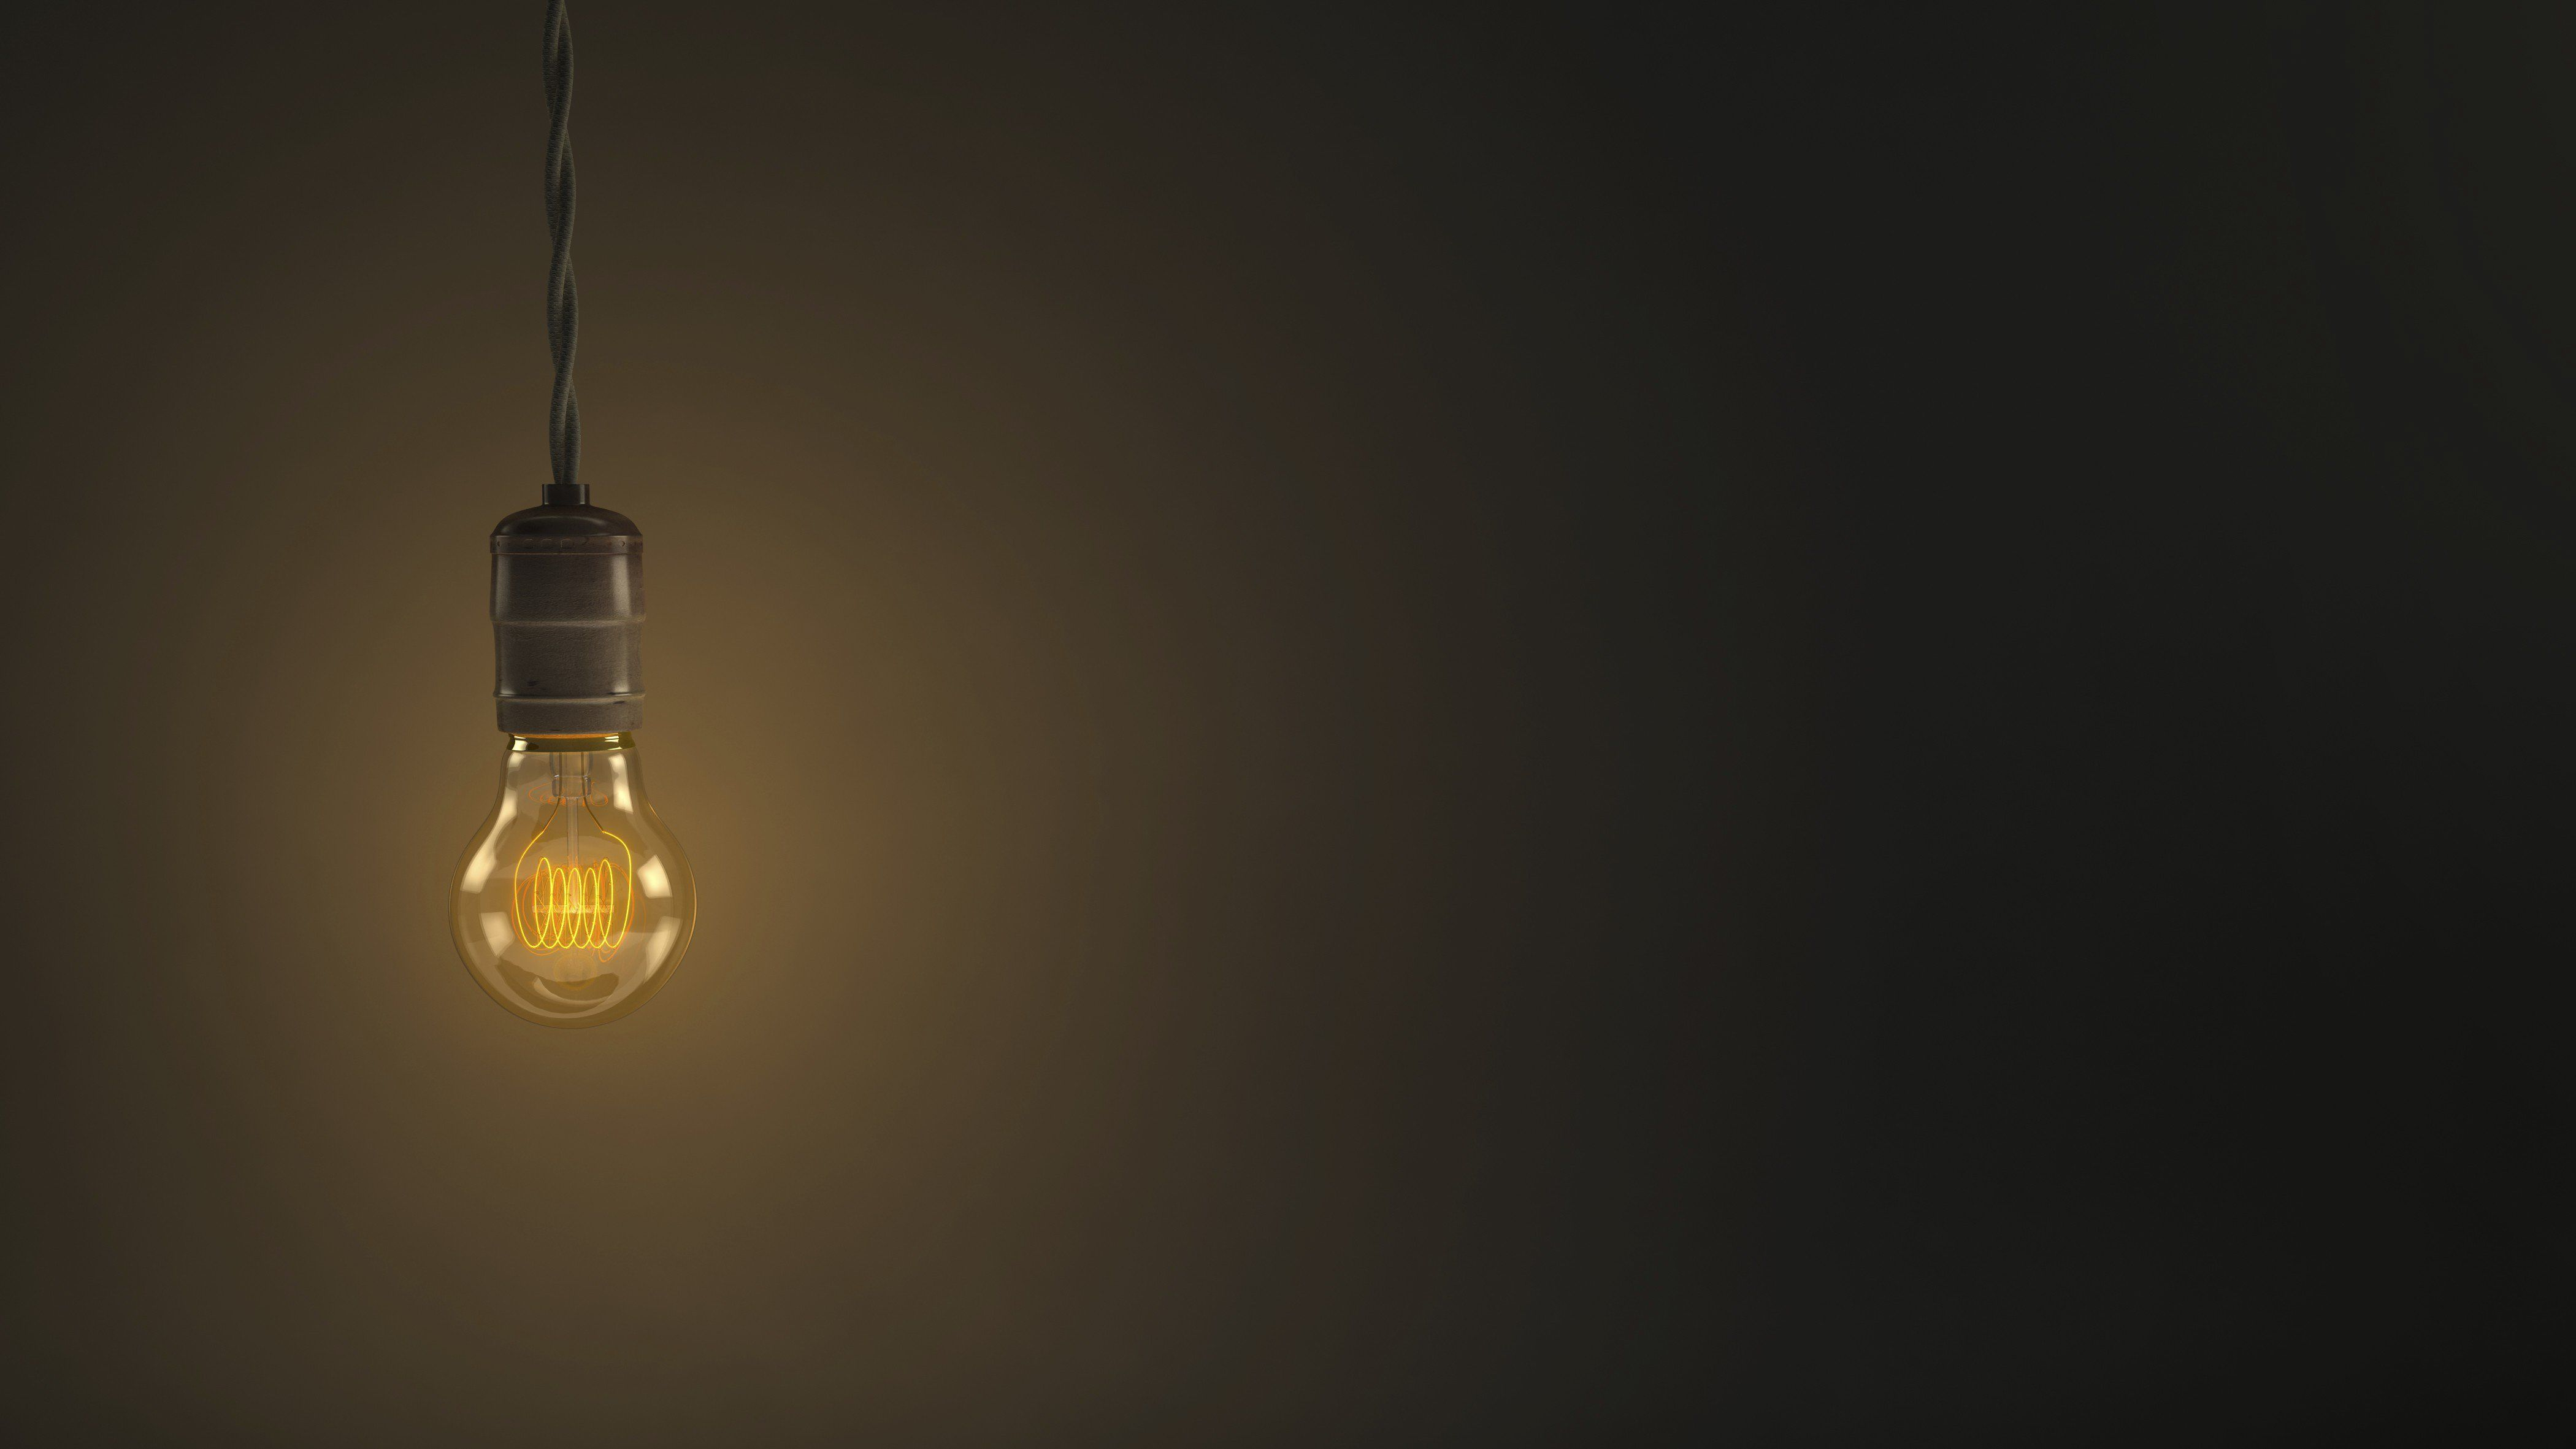 170 hd and qhd wallpapers of beautiful lights and light bulbs